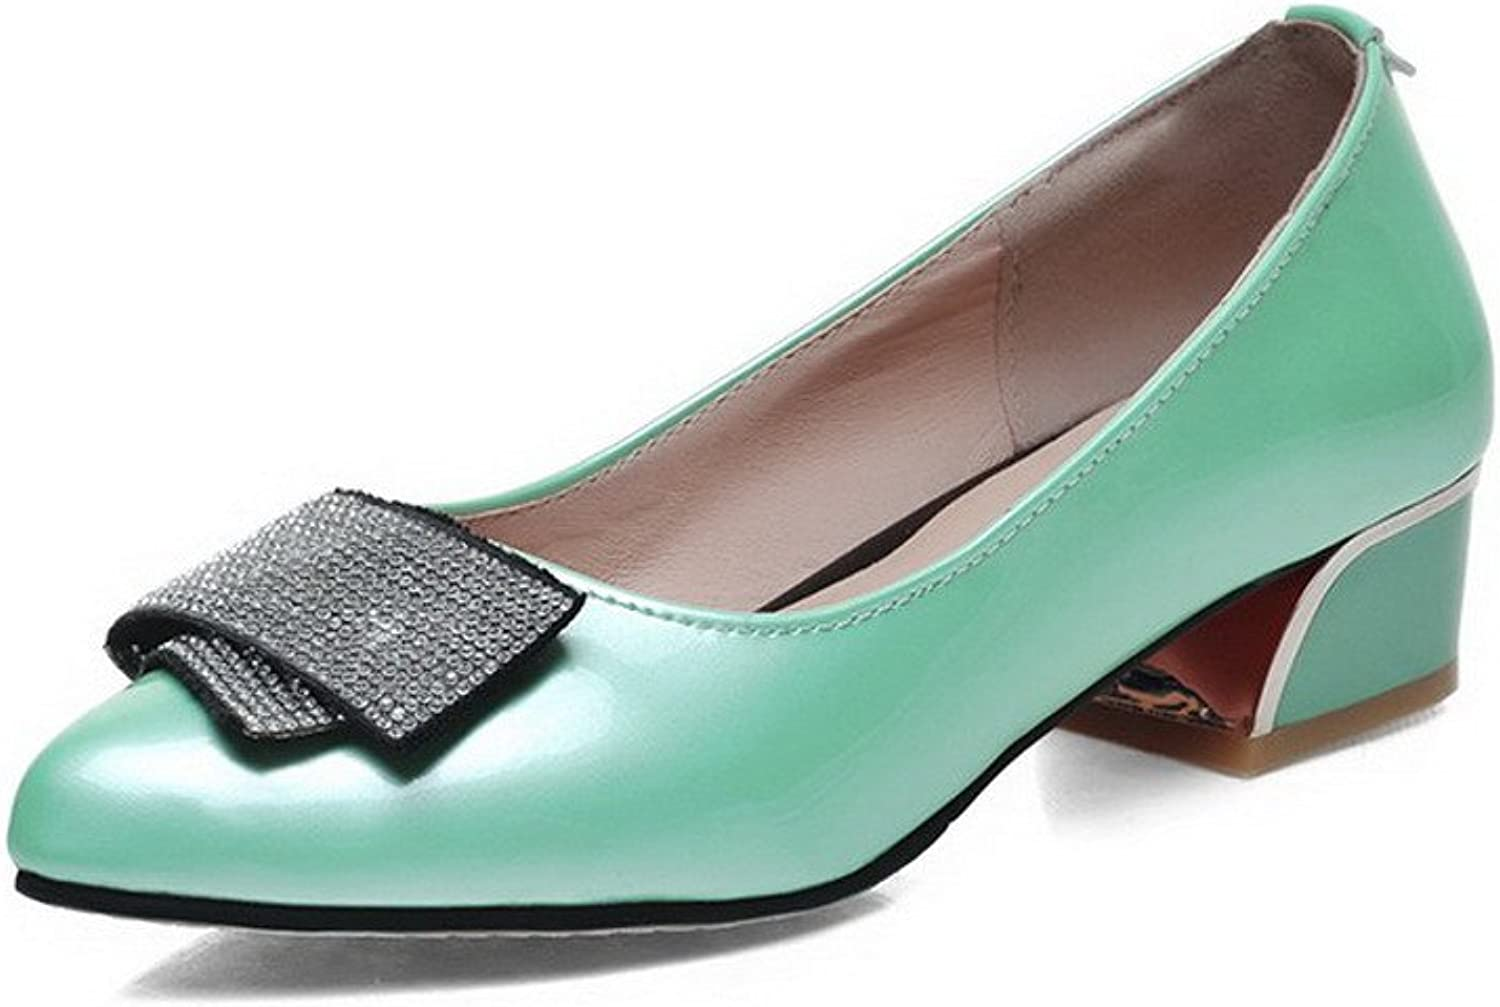 AmoonyFashion Women's Solid Patent Leather Low-Heels Pull-on Pointed Closed Toe Pumps-shoes